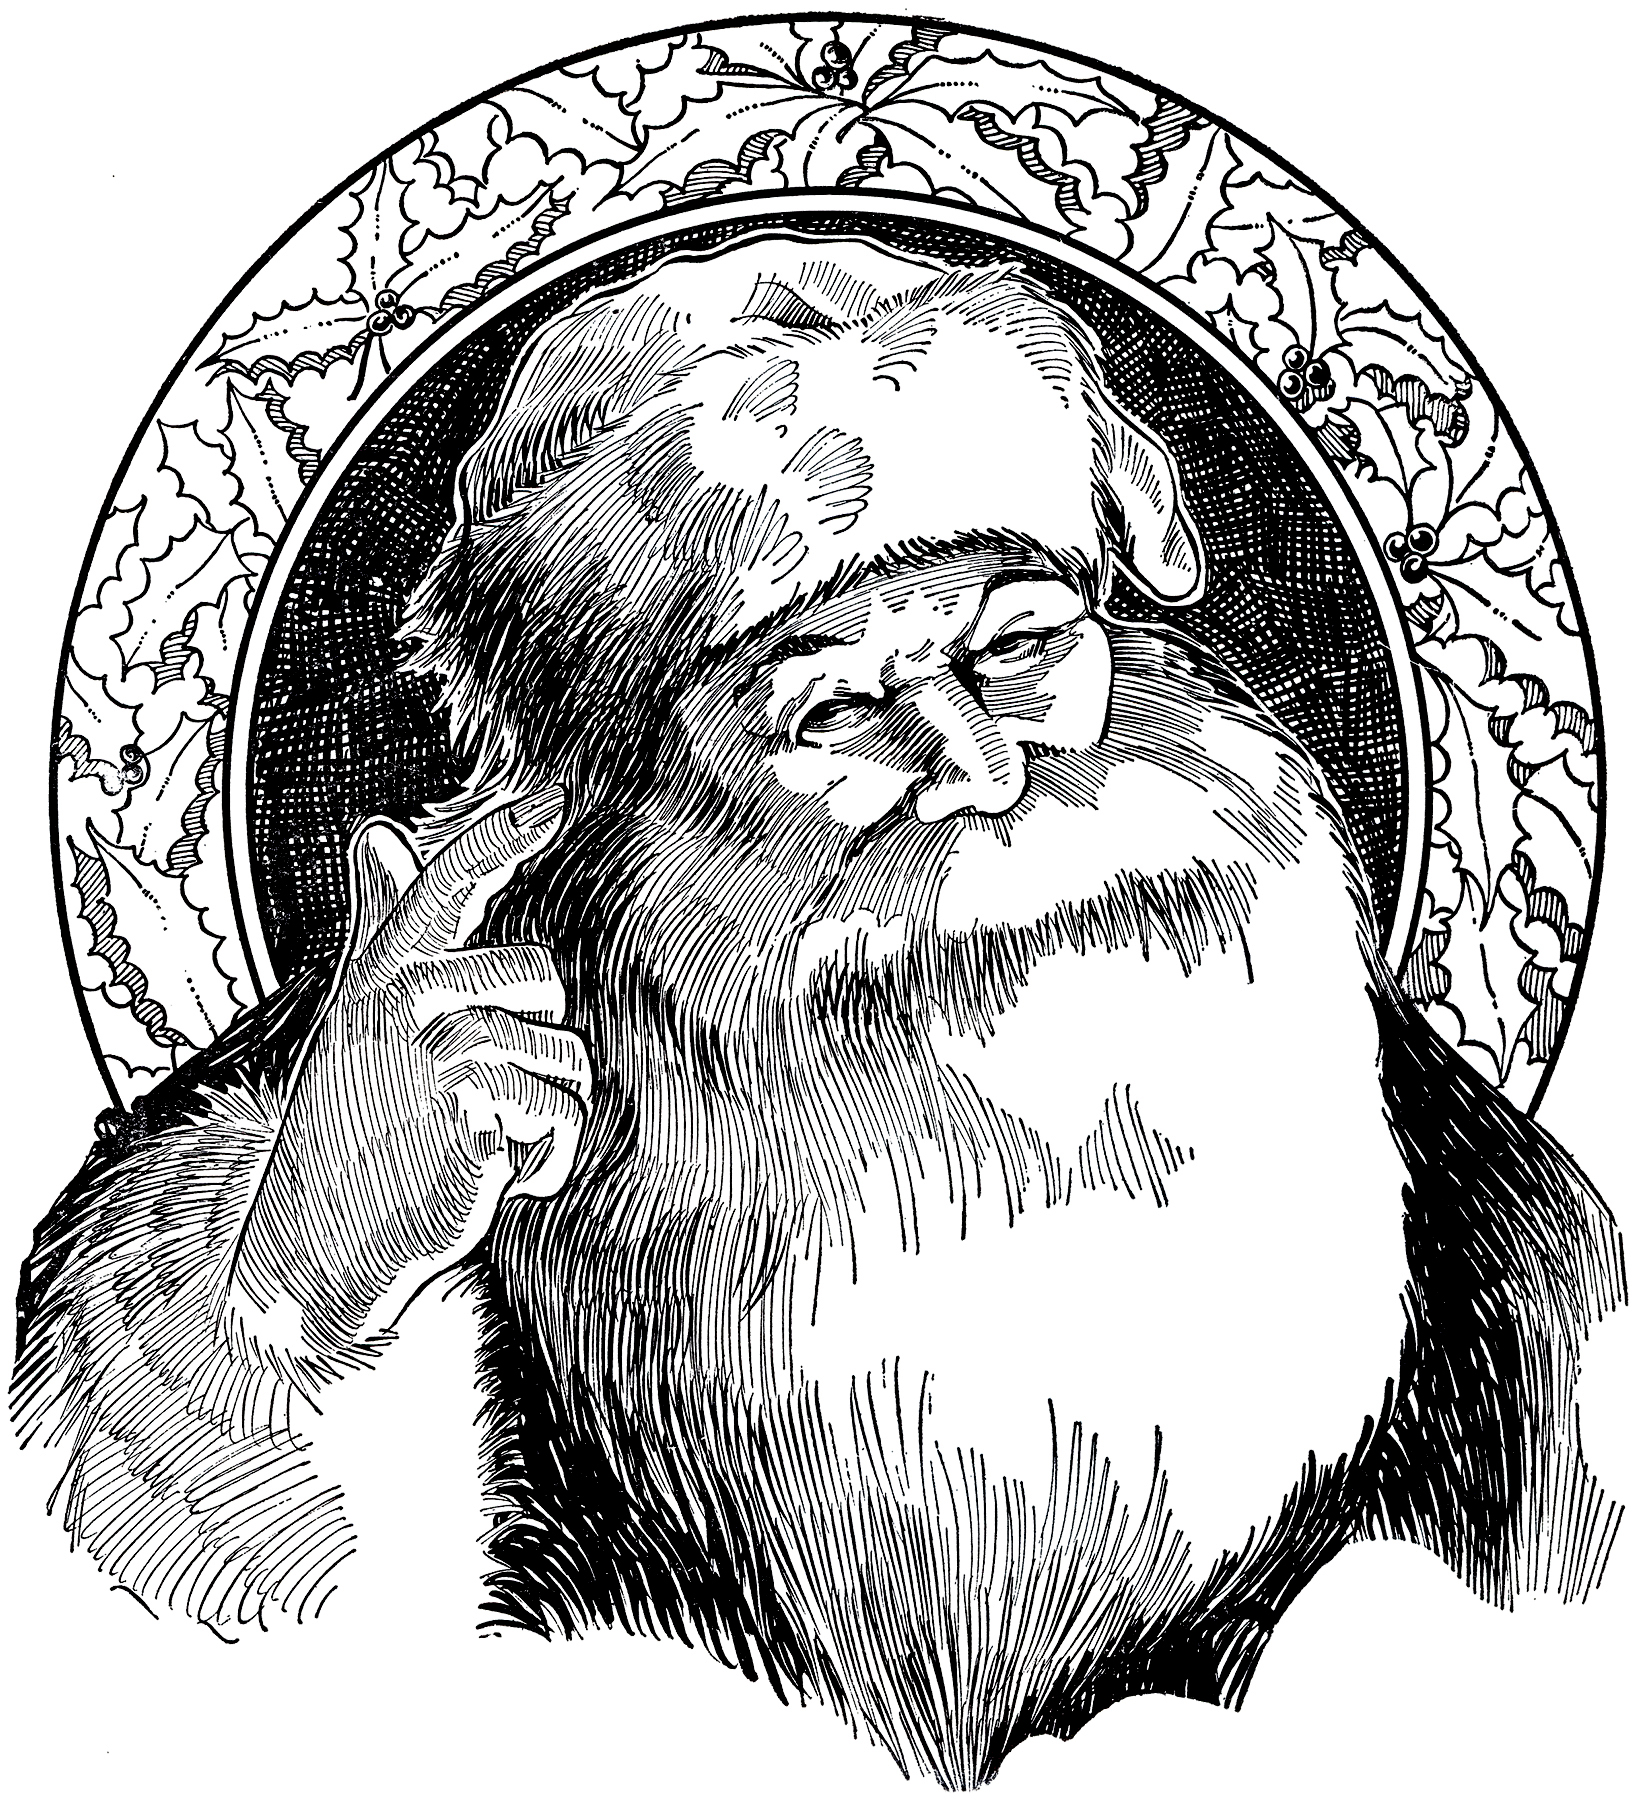 Classic Retro Illustration: 6 Santa Illustrations